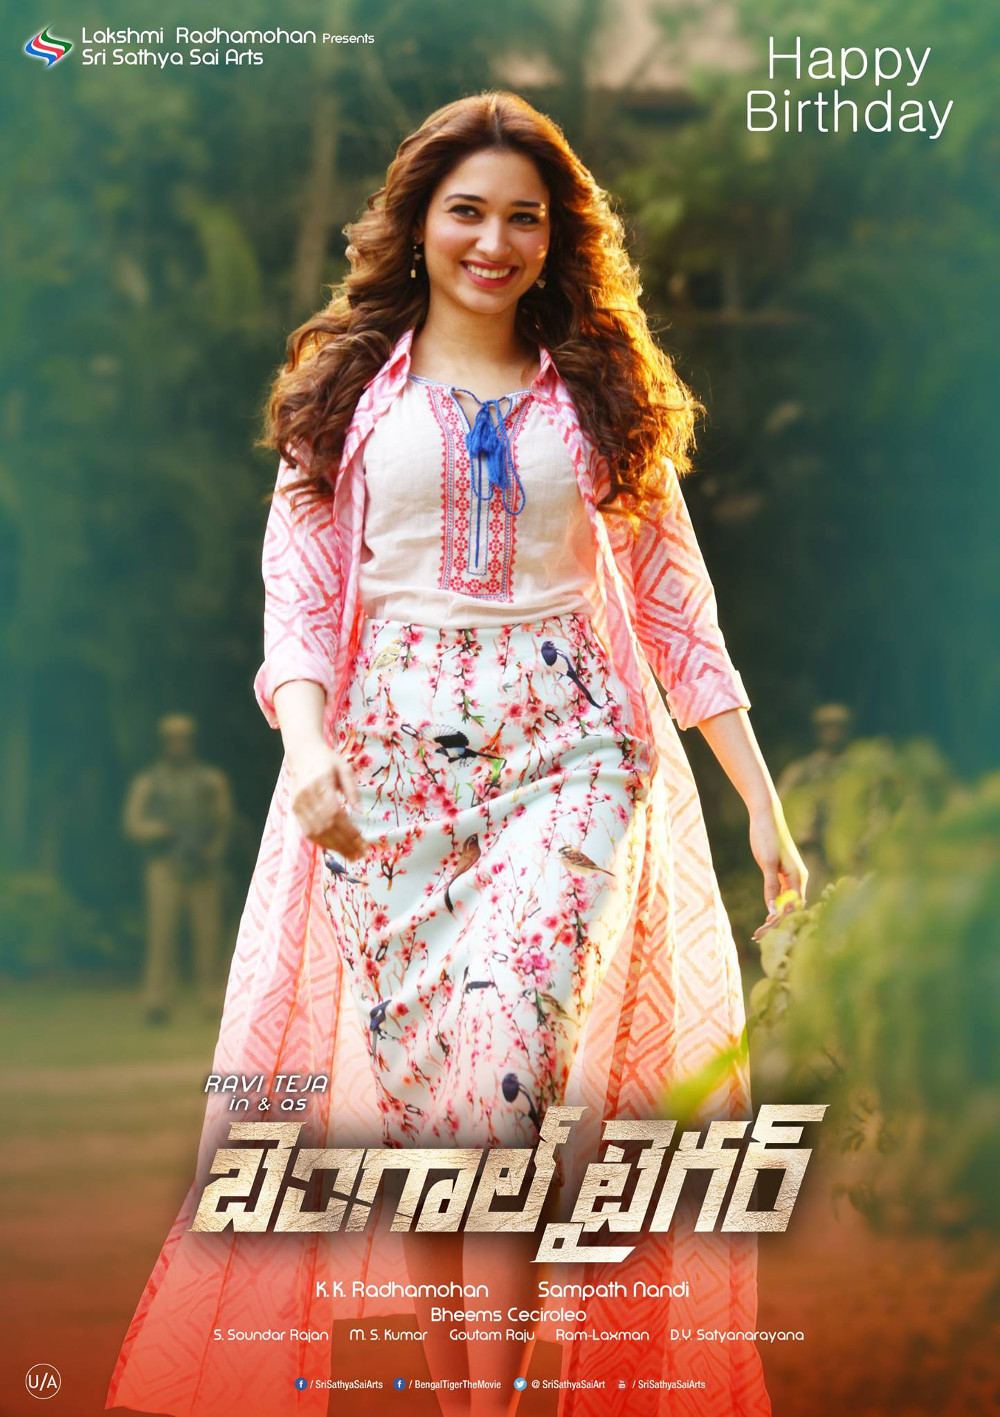 Bengal Tiger Tamannaah Birthday Special Poster | New Movie ...